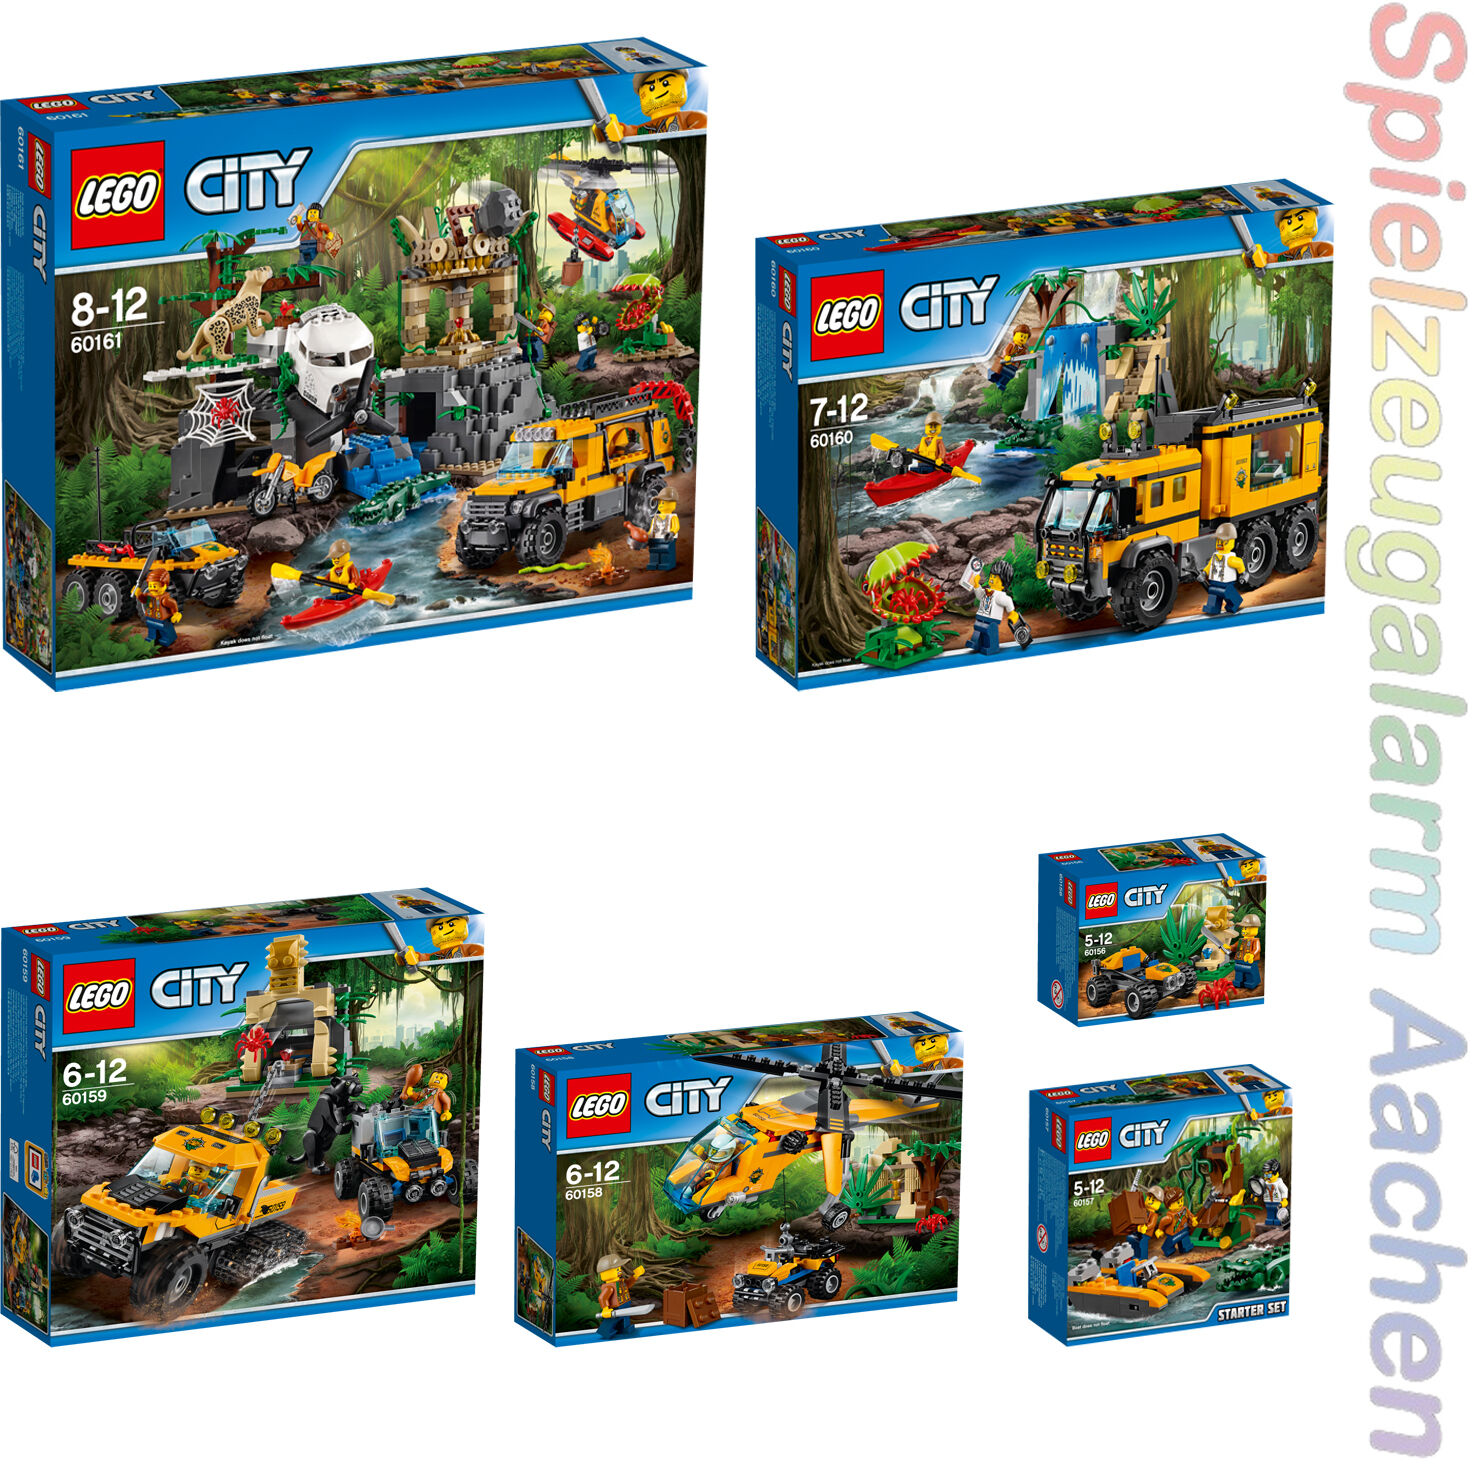 Lego City Jungle Full Collection 60156 60157 60158  60159 60160 60161 n7 17  détaillants en ligne